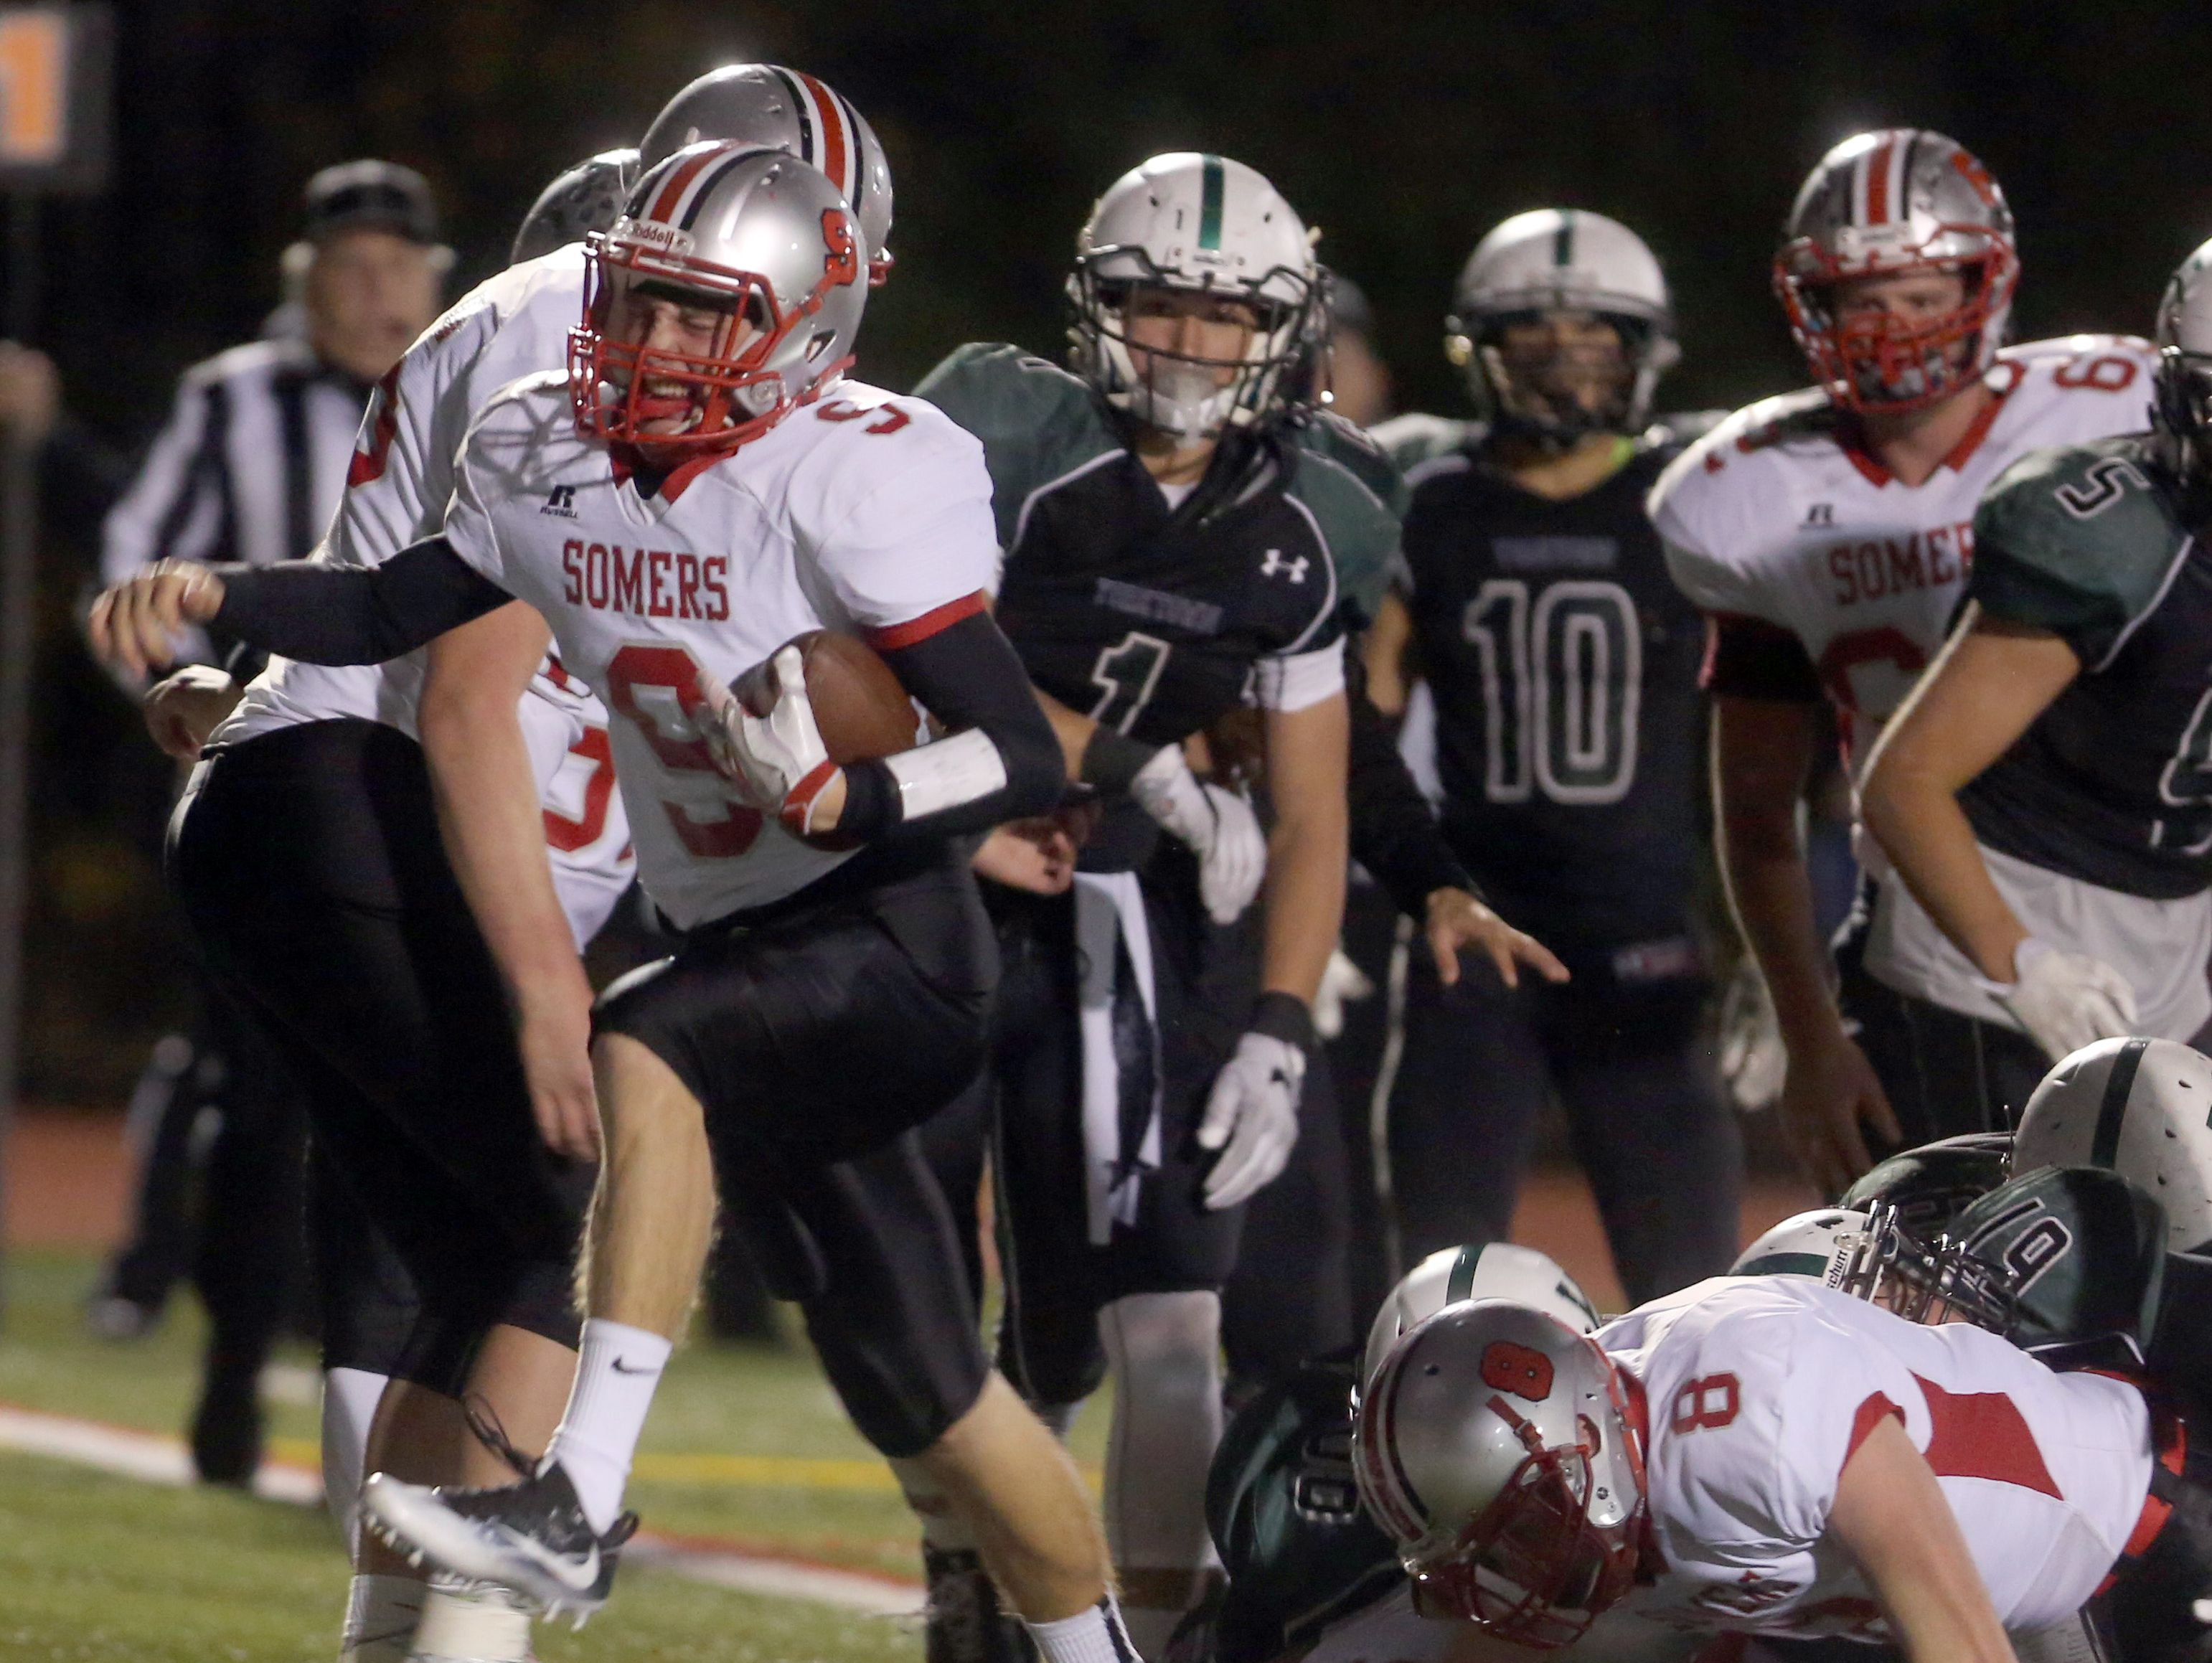 Somers quarterback Kevin Olifiers scores on a keeper against Yorktown during the Section 1 Class A football championship at Mahopac High School Nov. 6, 2016.